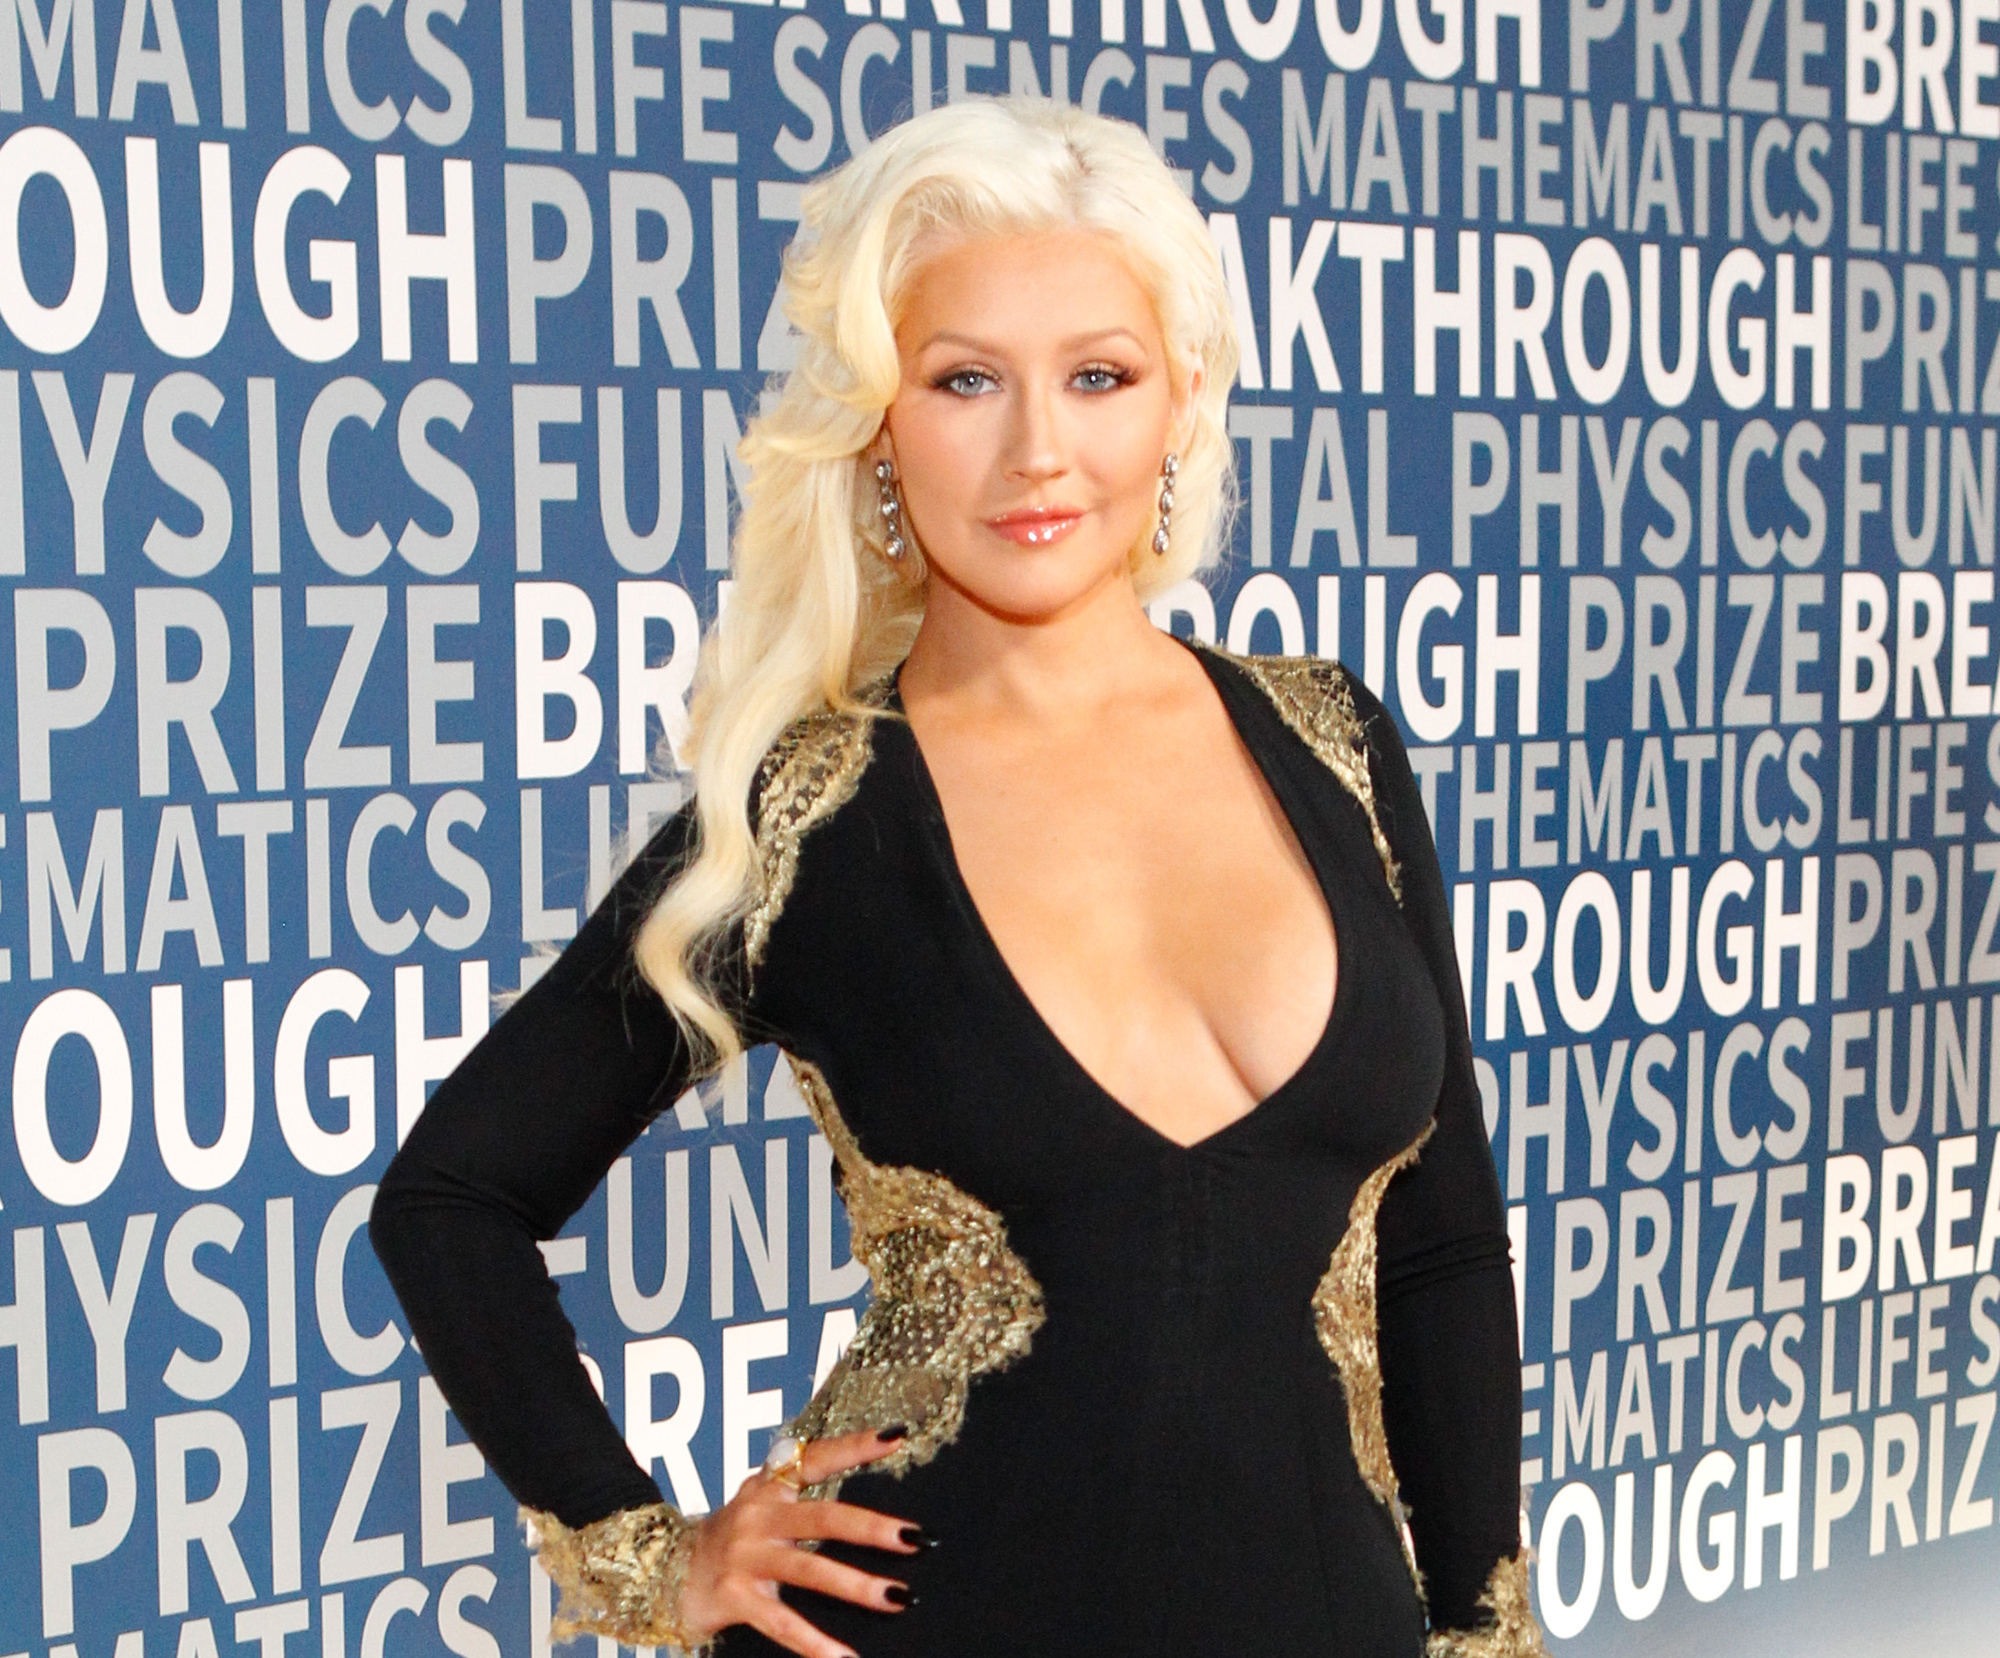 Christina Aguilera nudes (54 photo), Ass, Fappening, Feet, braless 2020